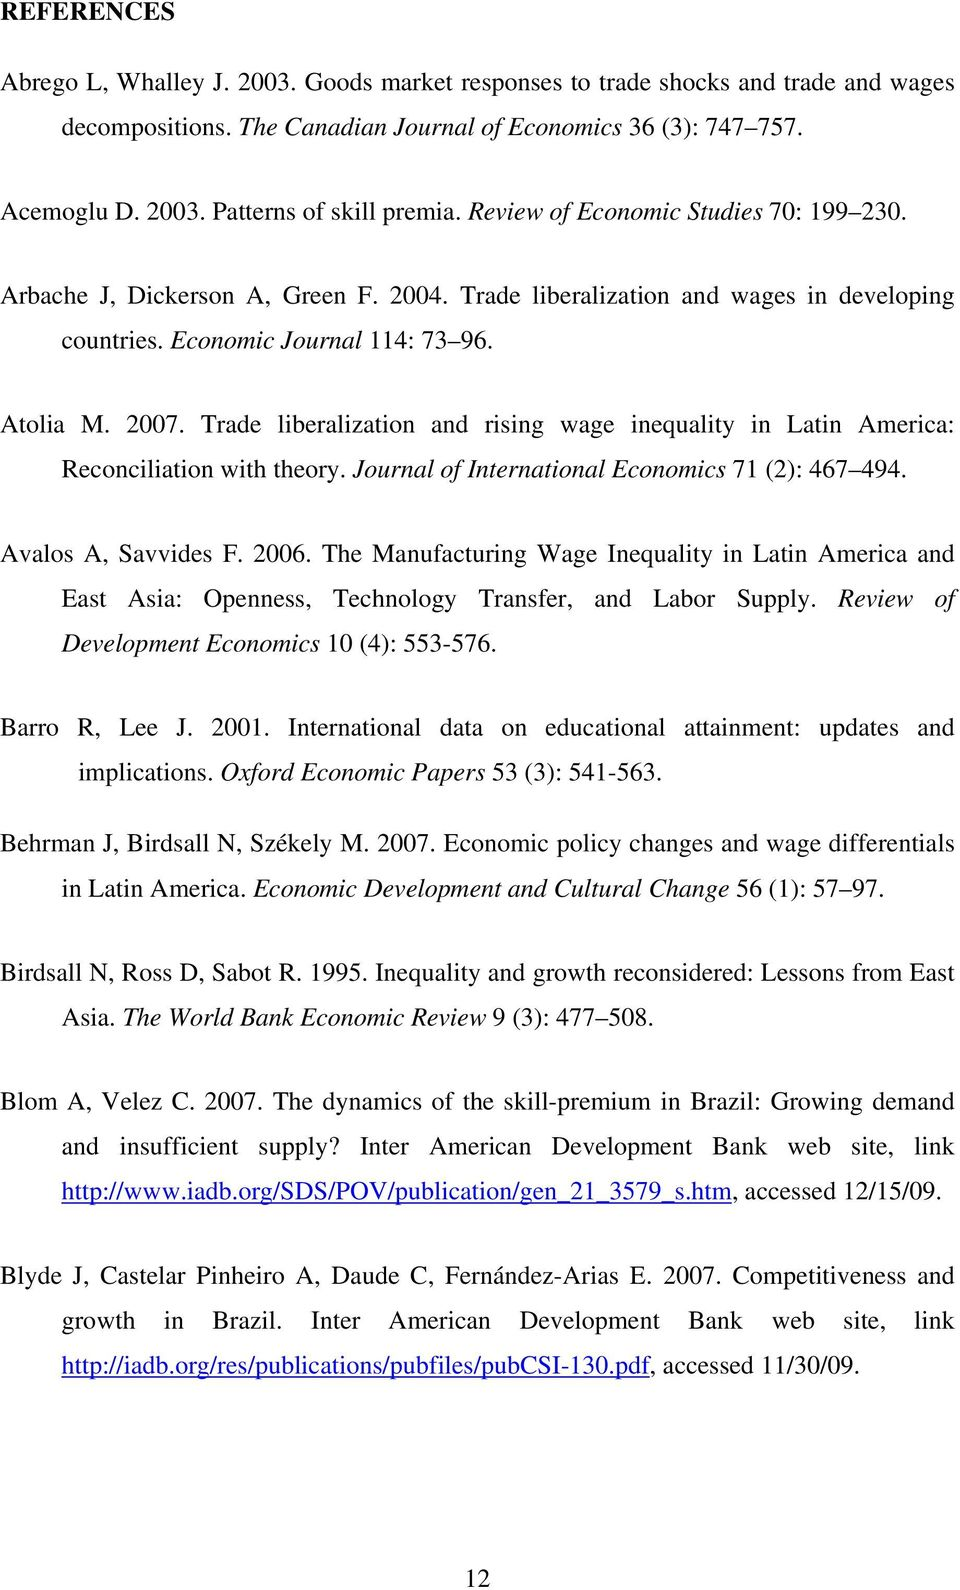 Trade liberalization and rising wage inequality in Latin America: Reconciliation with theory. Journal of International Economics 71 (2): 467 494. Avalos A, Savvides F. 2006.